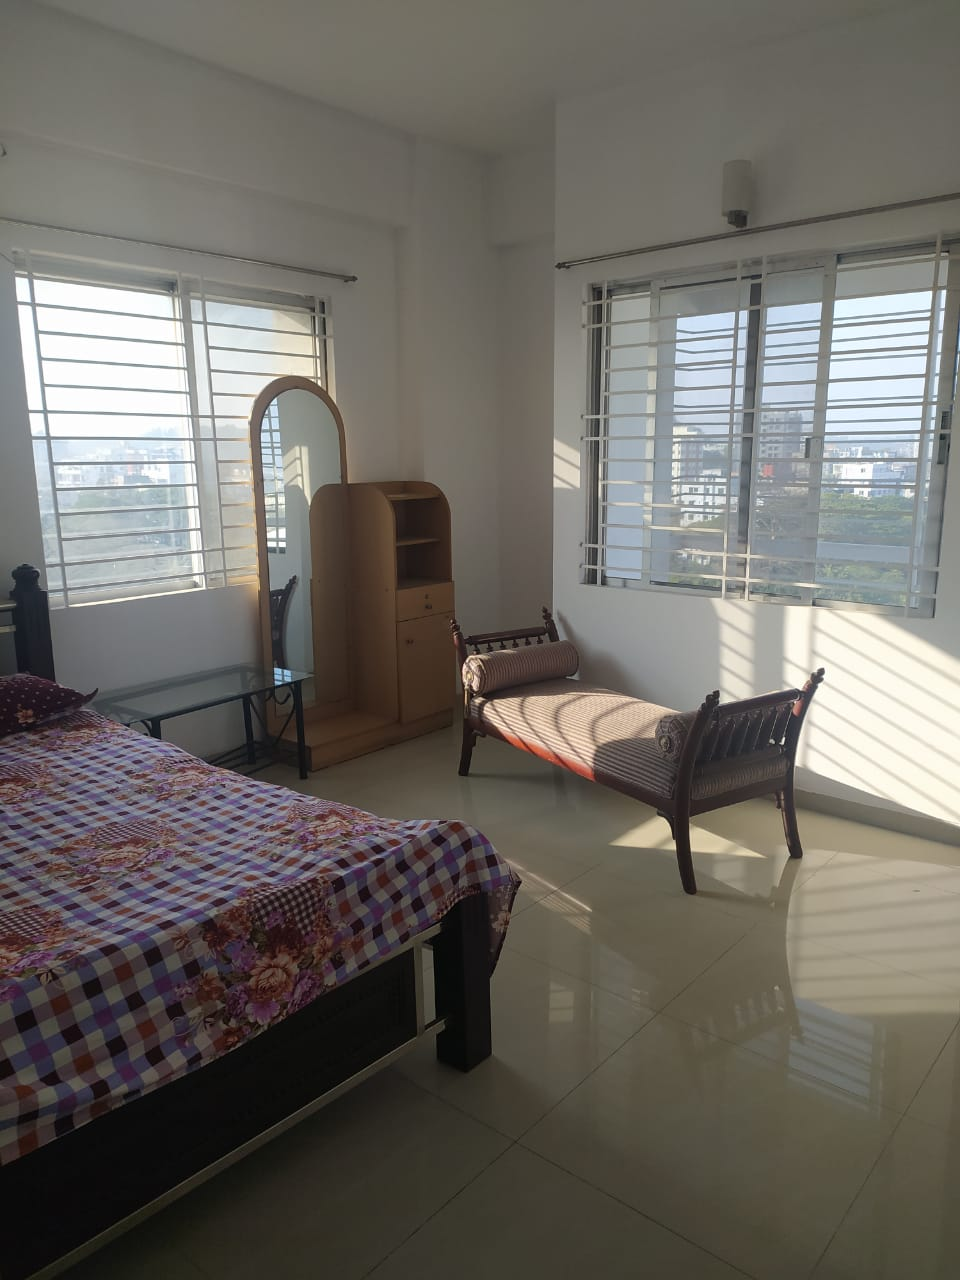 1531-sft-apartment-for-rent-in-west-khulshi-chittagong-171143